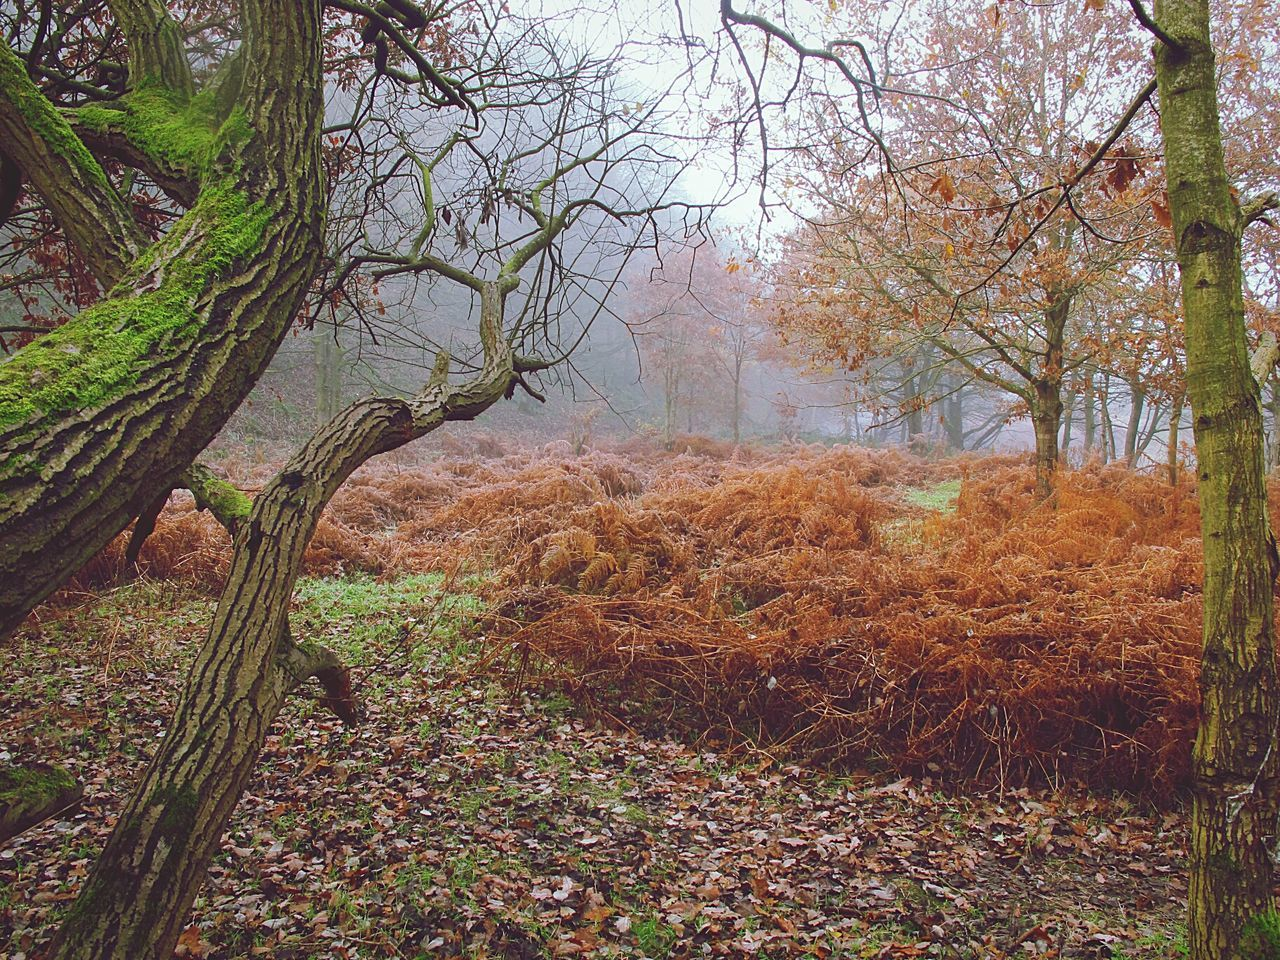 Foggy Morning EyeEmbestshots Autumnbeauty Autumn Leaves Cold Temperature Fineartphotography Frosty Days Tranquil Scene EnchantedForest WoodLand Tree Trunk Outdoors Beauty In Nature Tranquility Fog Valleys Landscape Woodlands Non-urban Scene Scenics Foggymornings Winter Is Coming No People